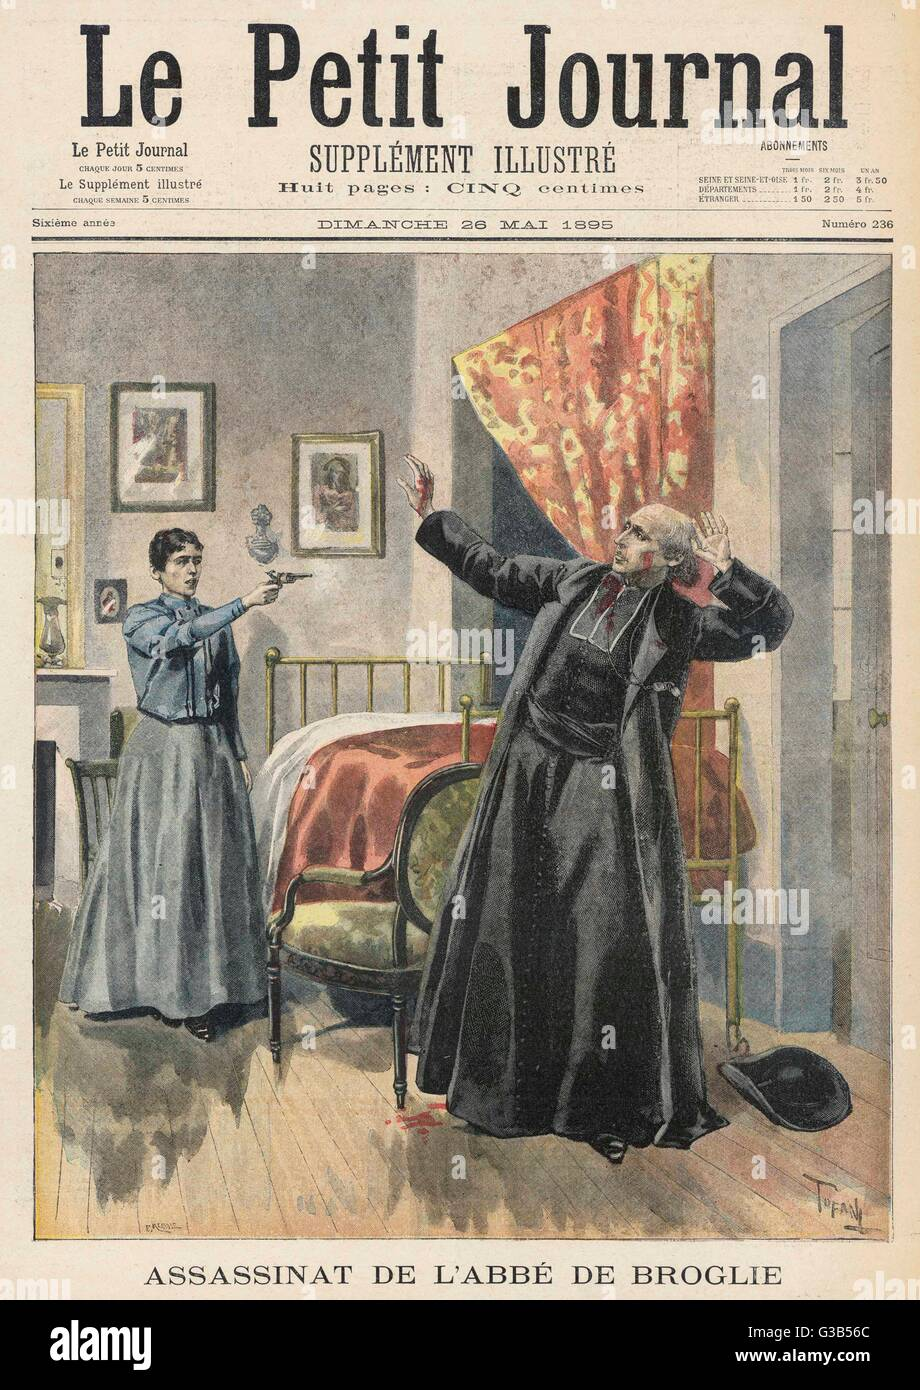 Mlle Amelot, maddened by  mysticism and angered by nuns  and priests, kills Abbe de  Broglie, by shooting him   - Stock Image